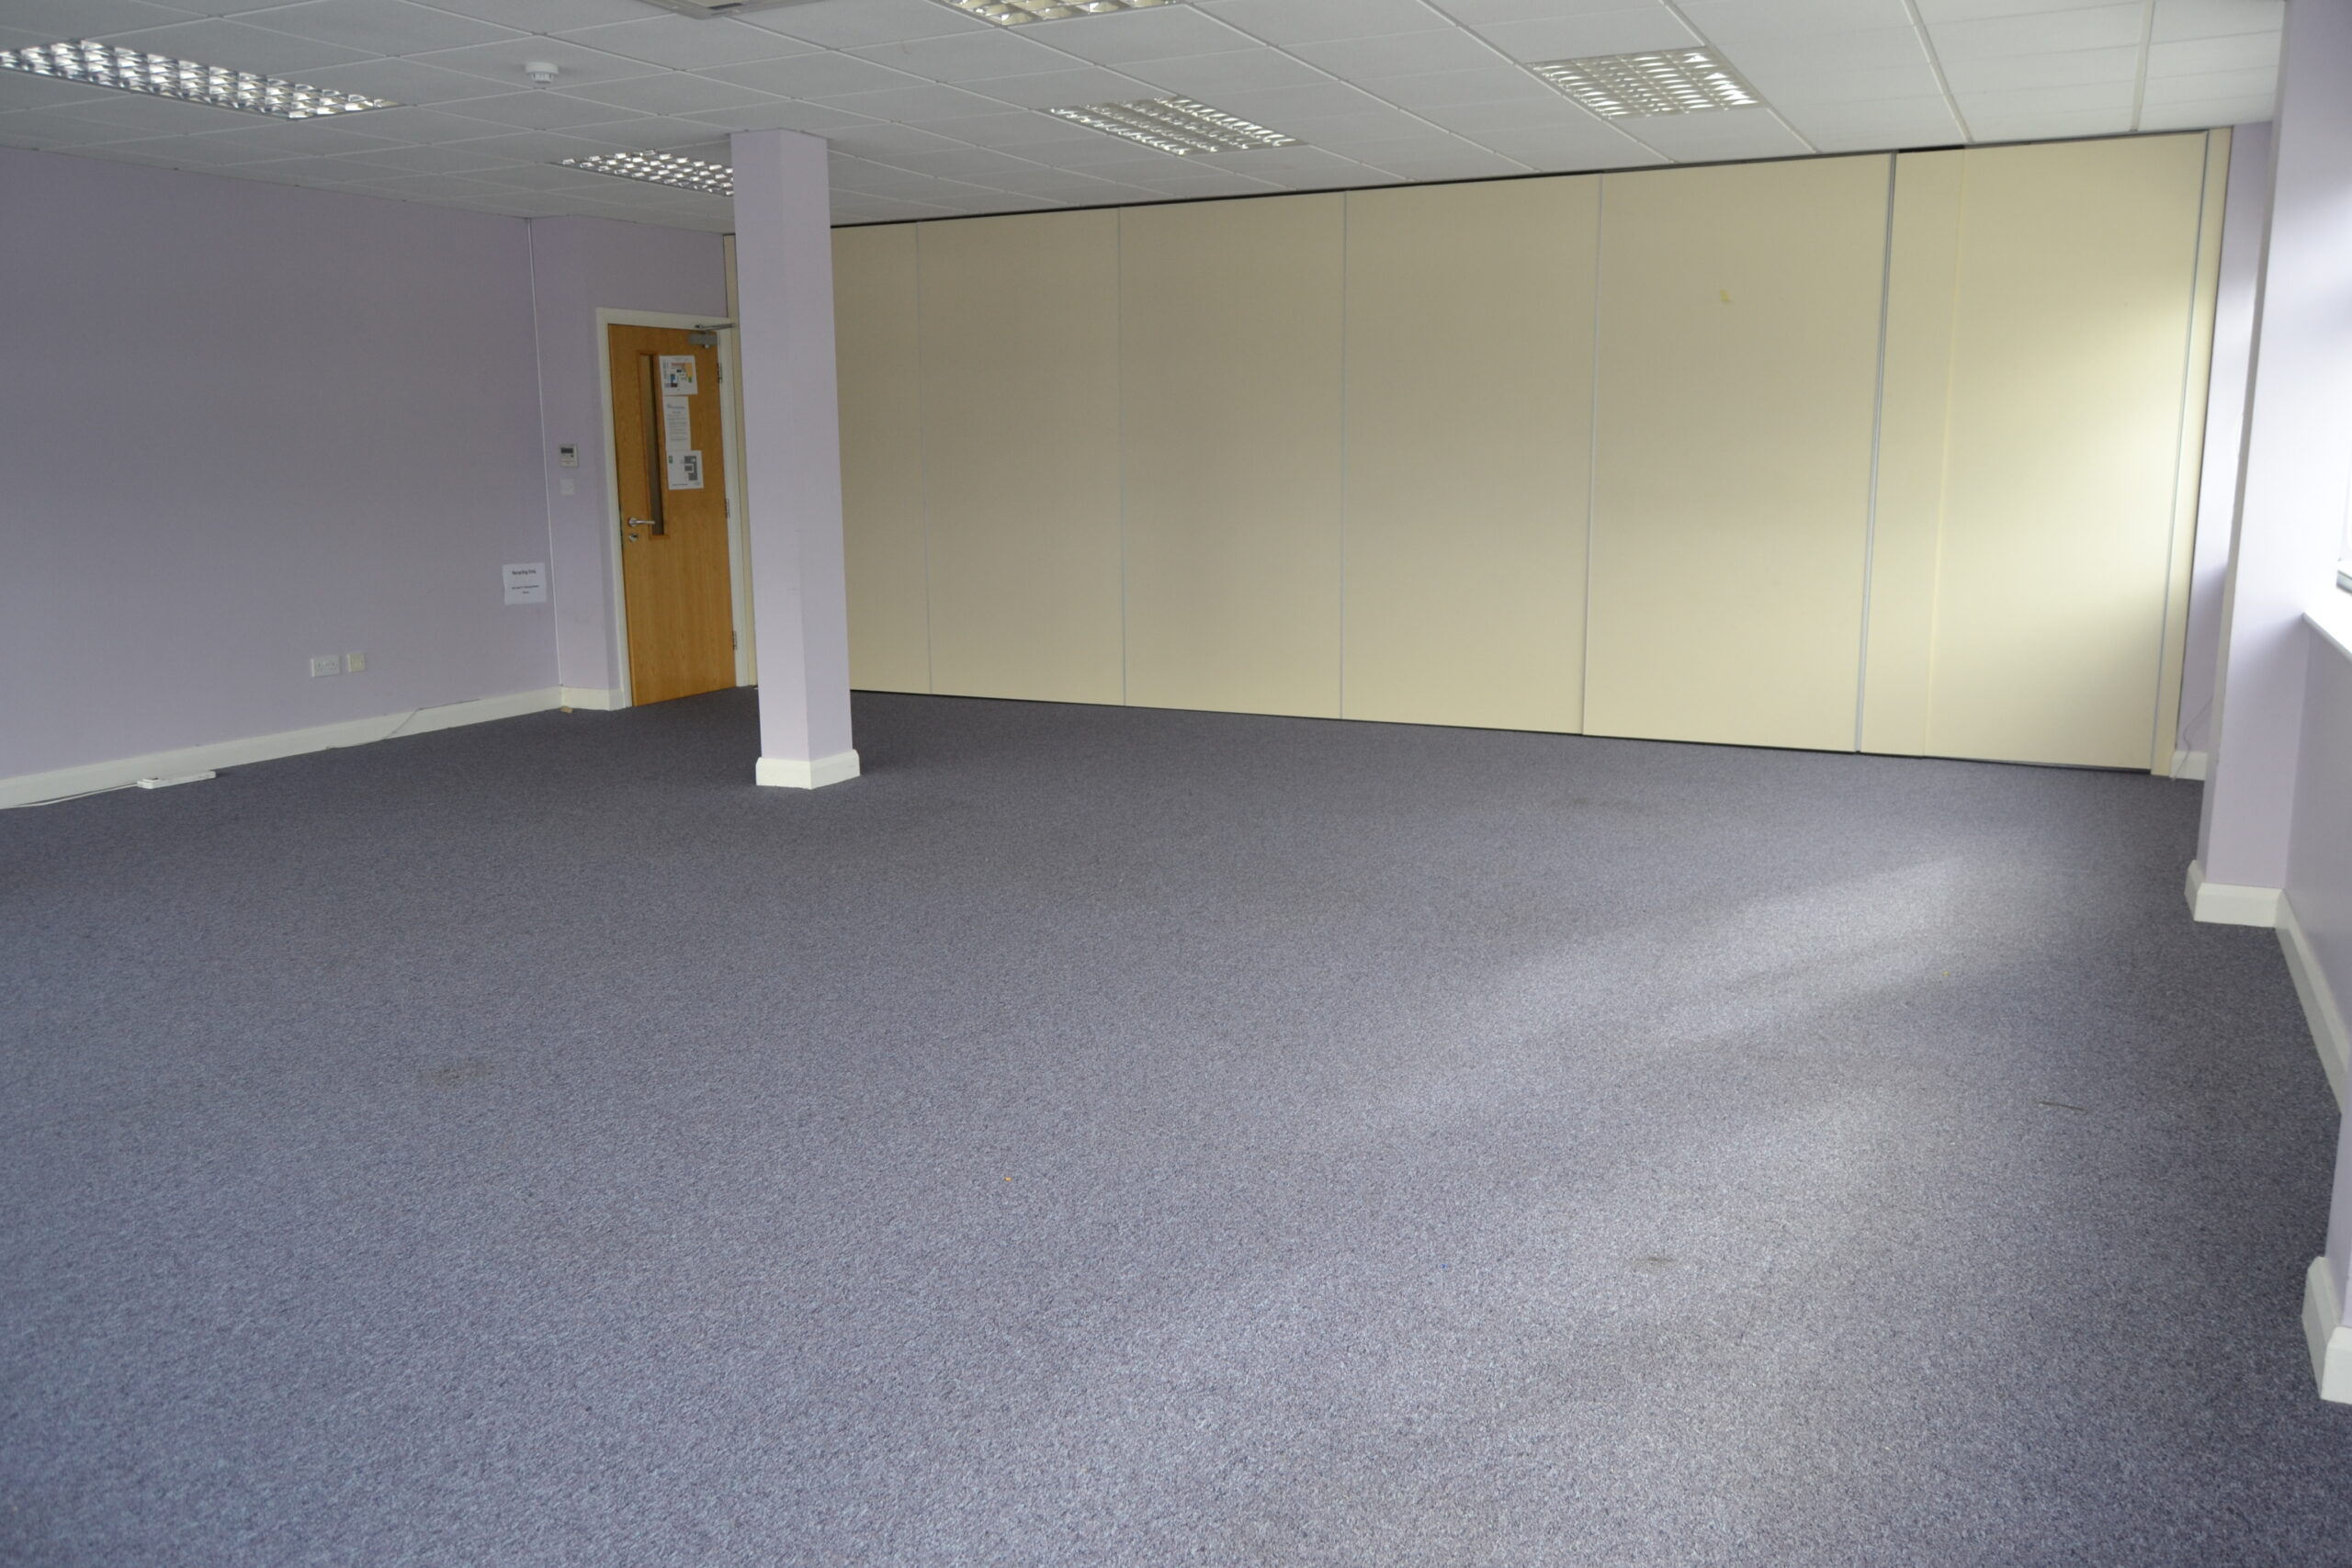 Office Space to hire Sligo <a class='bp-suggestions-mention' href='https://www.cmd.ie/members/cmd/' rel='nofollow'>@CMD</a> Training Institute